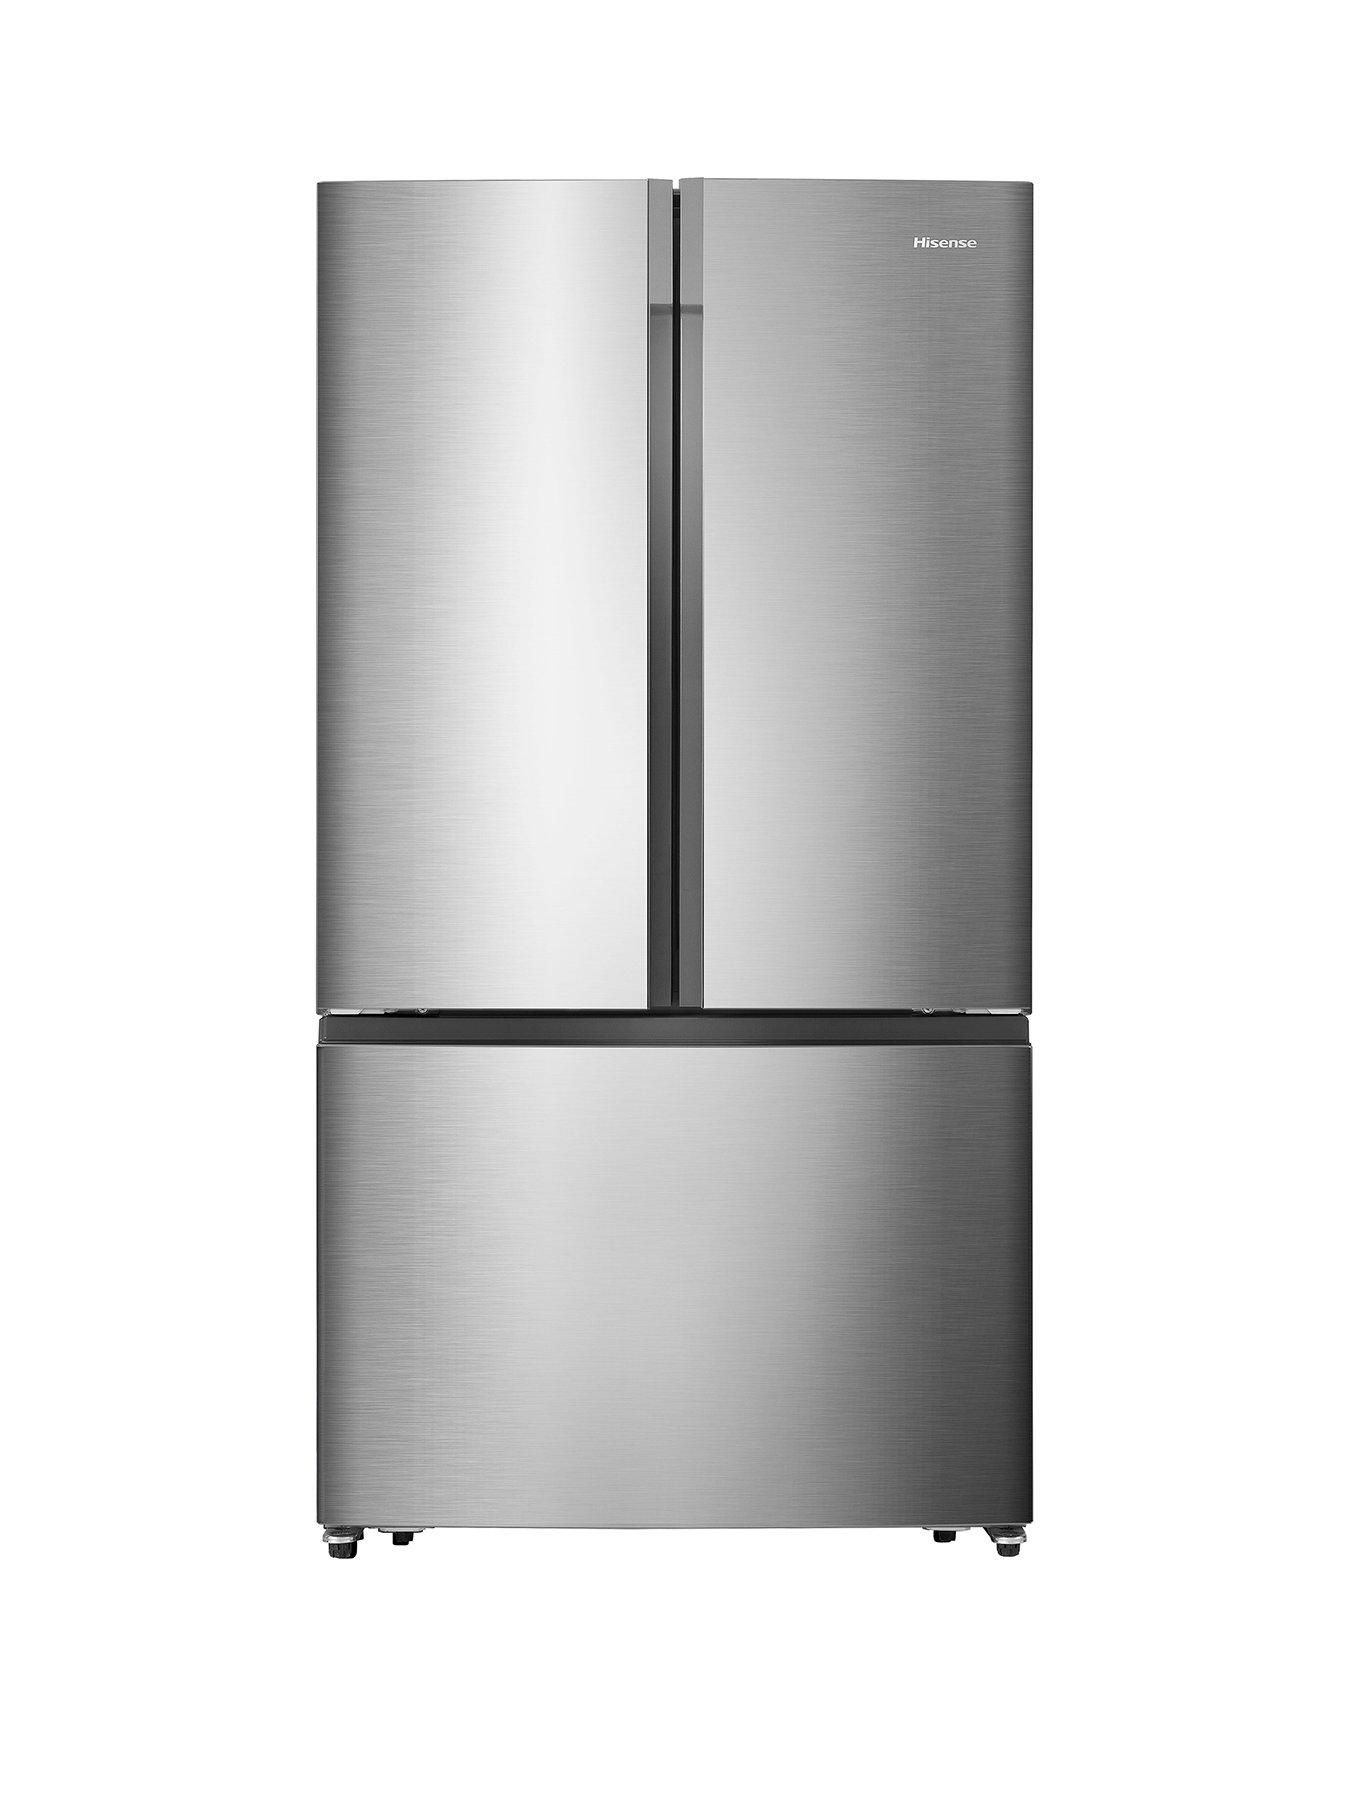 Rf715n4as1 91cm Wide Total No Frost French Door Food Centre Fridge Freezer Stainless Steel Effect With Images Fridge Freezers French Doors Safety Glass